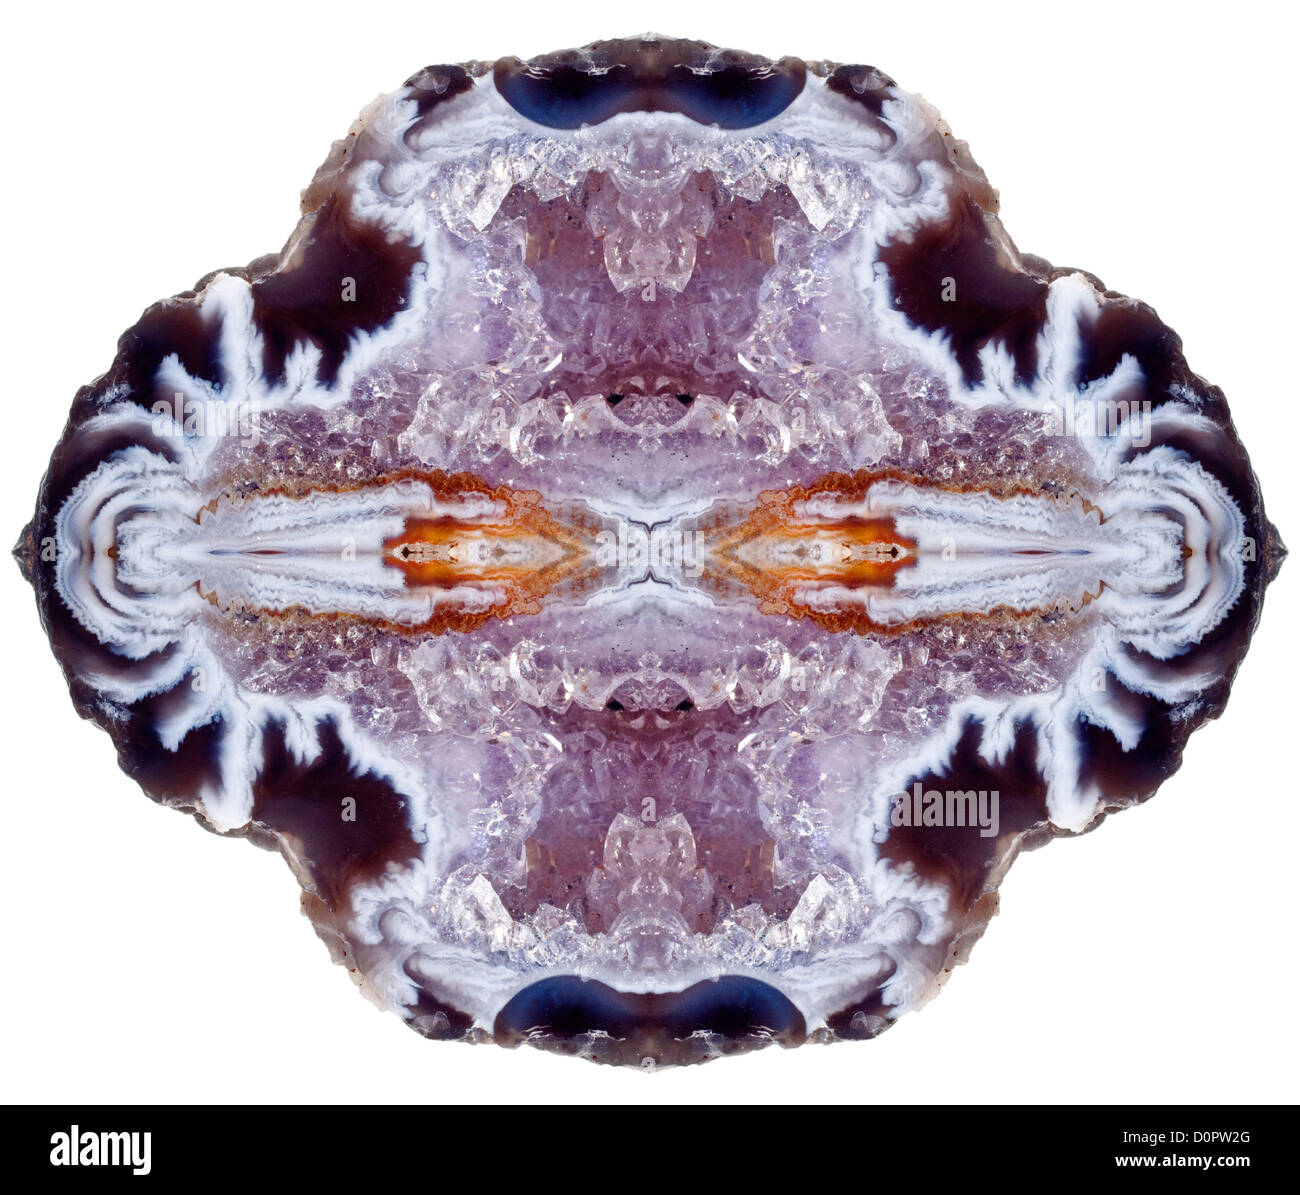 Geode, sliced open to reveal crystals and bands of agate - repeated to form symmetrical pattern - Stock Image